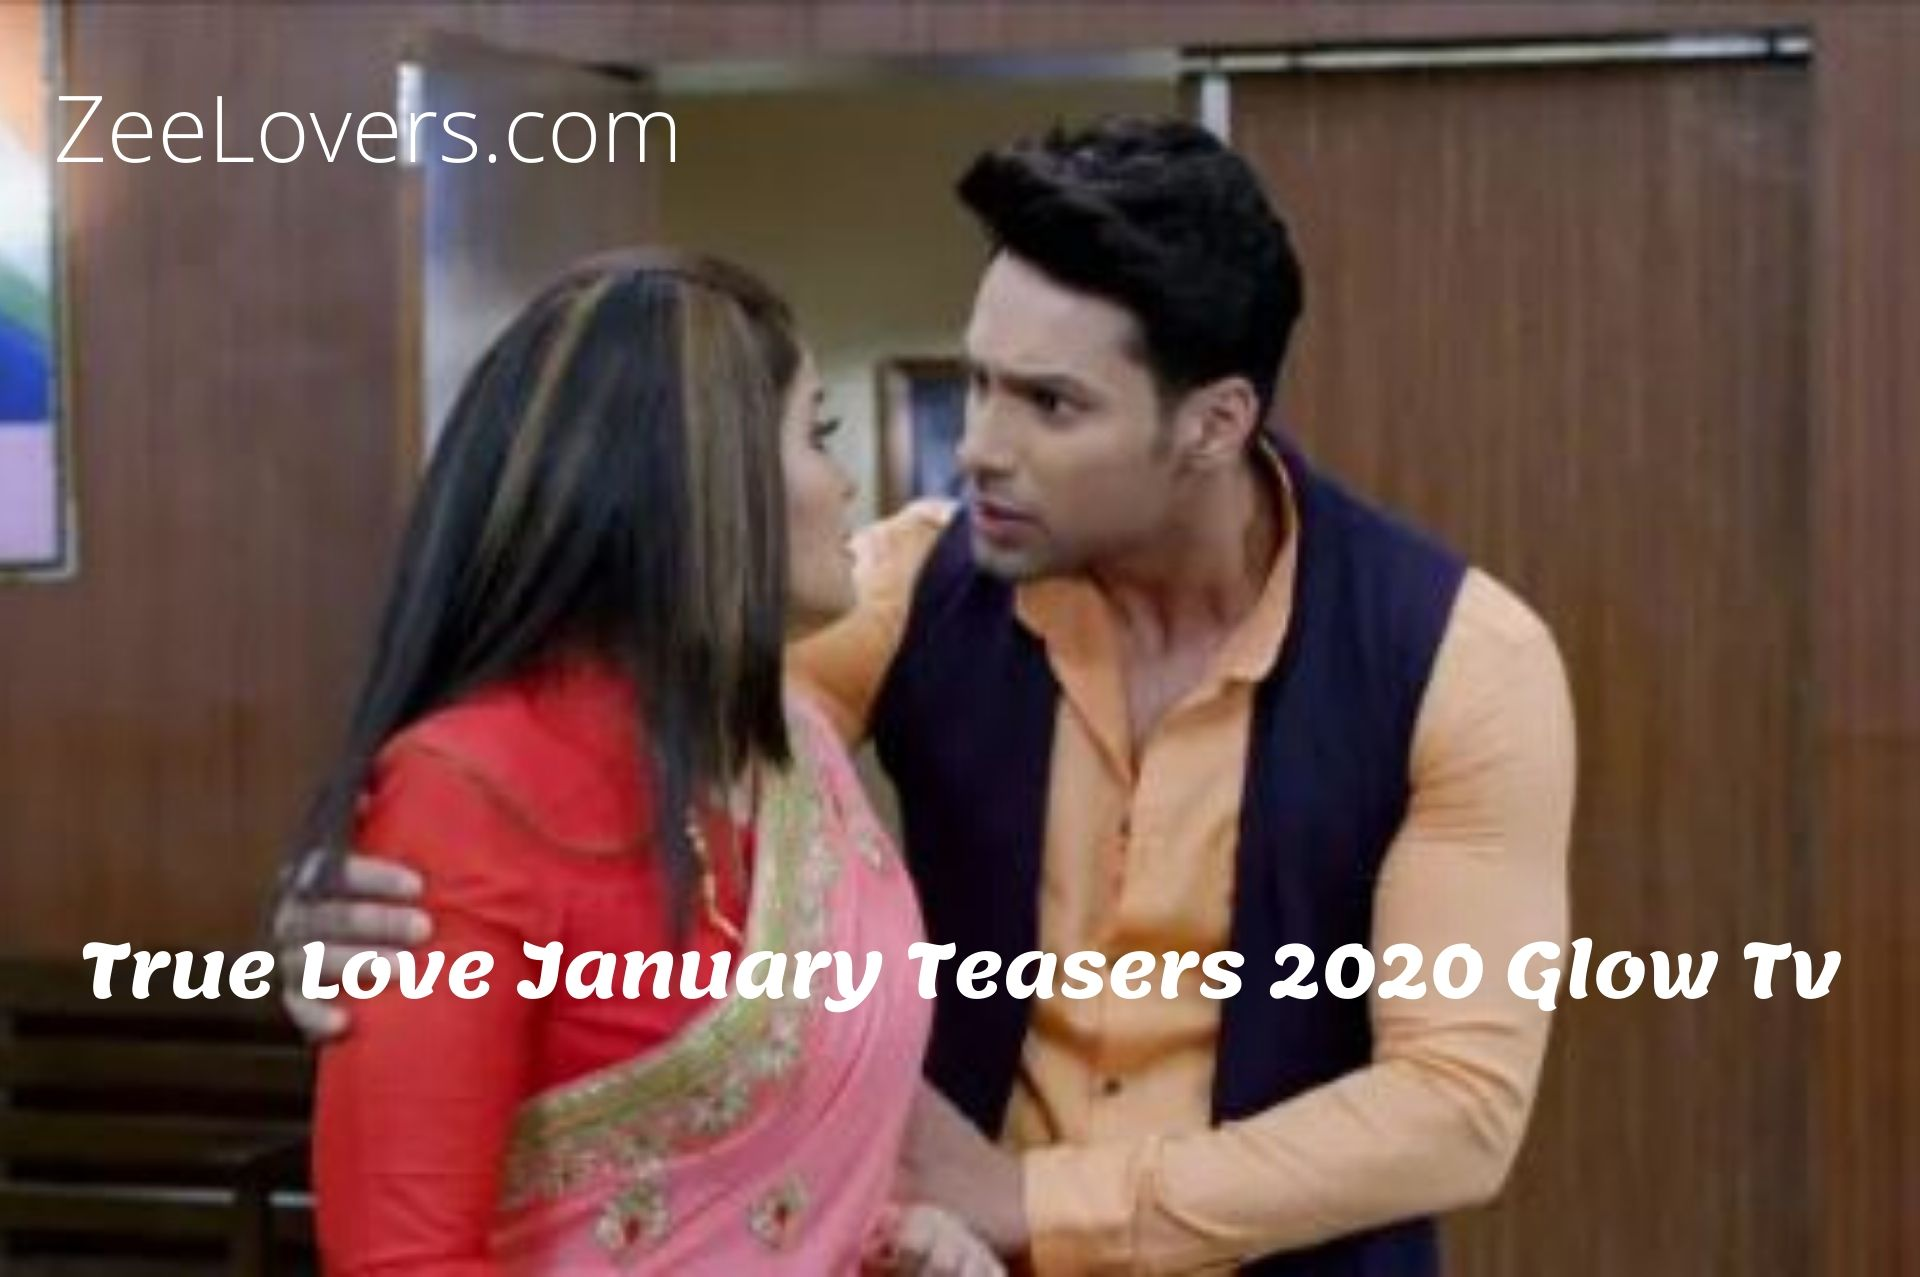 This is love January Teasers 2020 Glow Tv